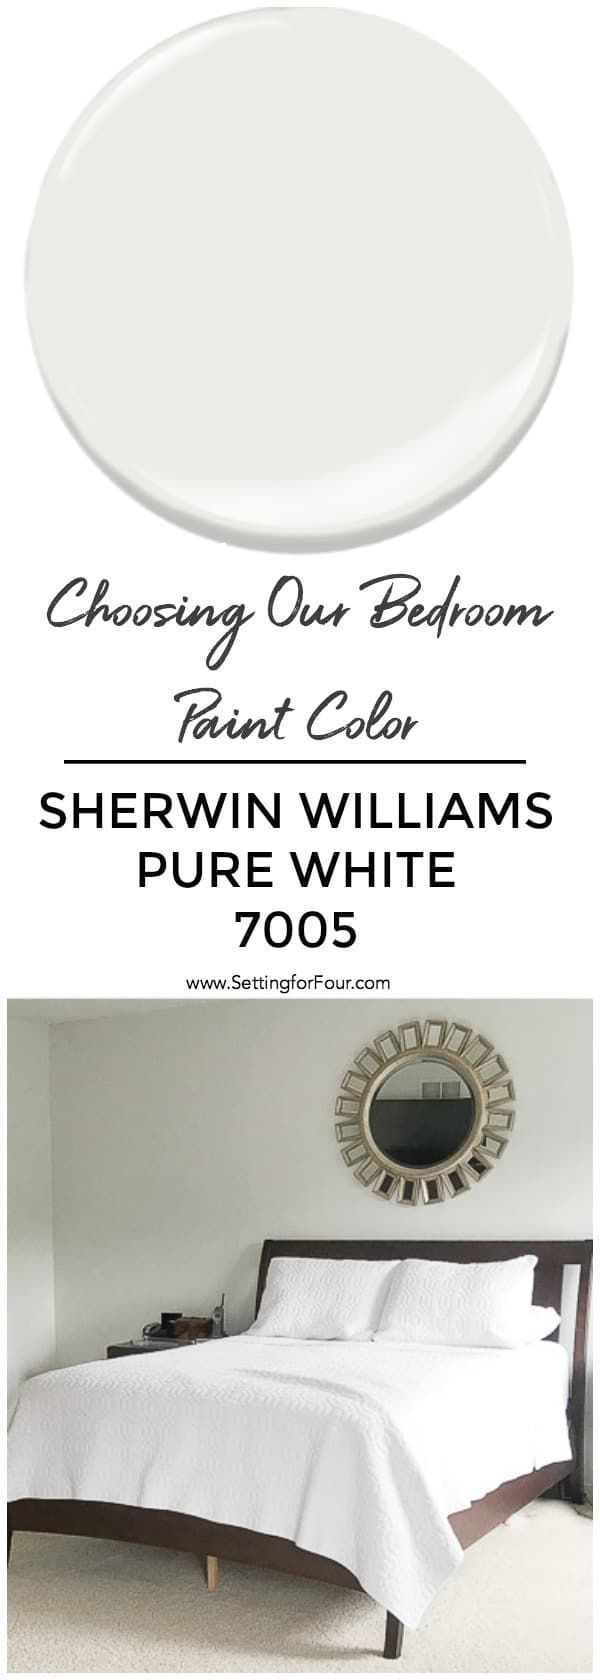 Choosing Our Bedroom Paint Color - Sherwin Williams Pure White #purewhite